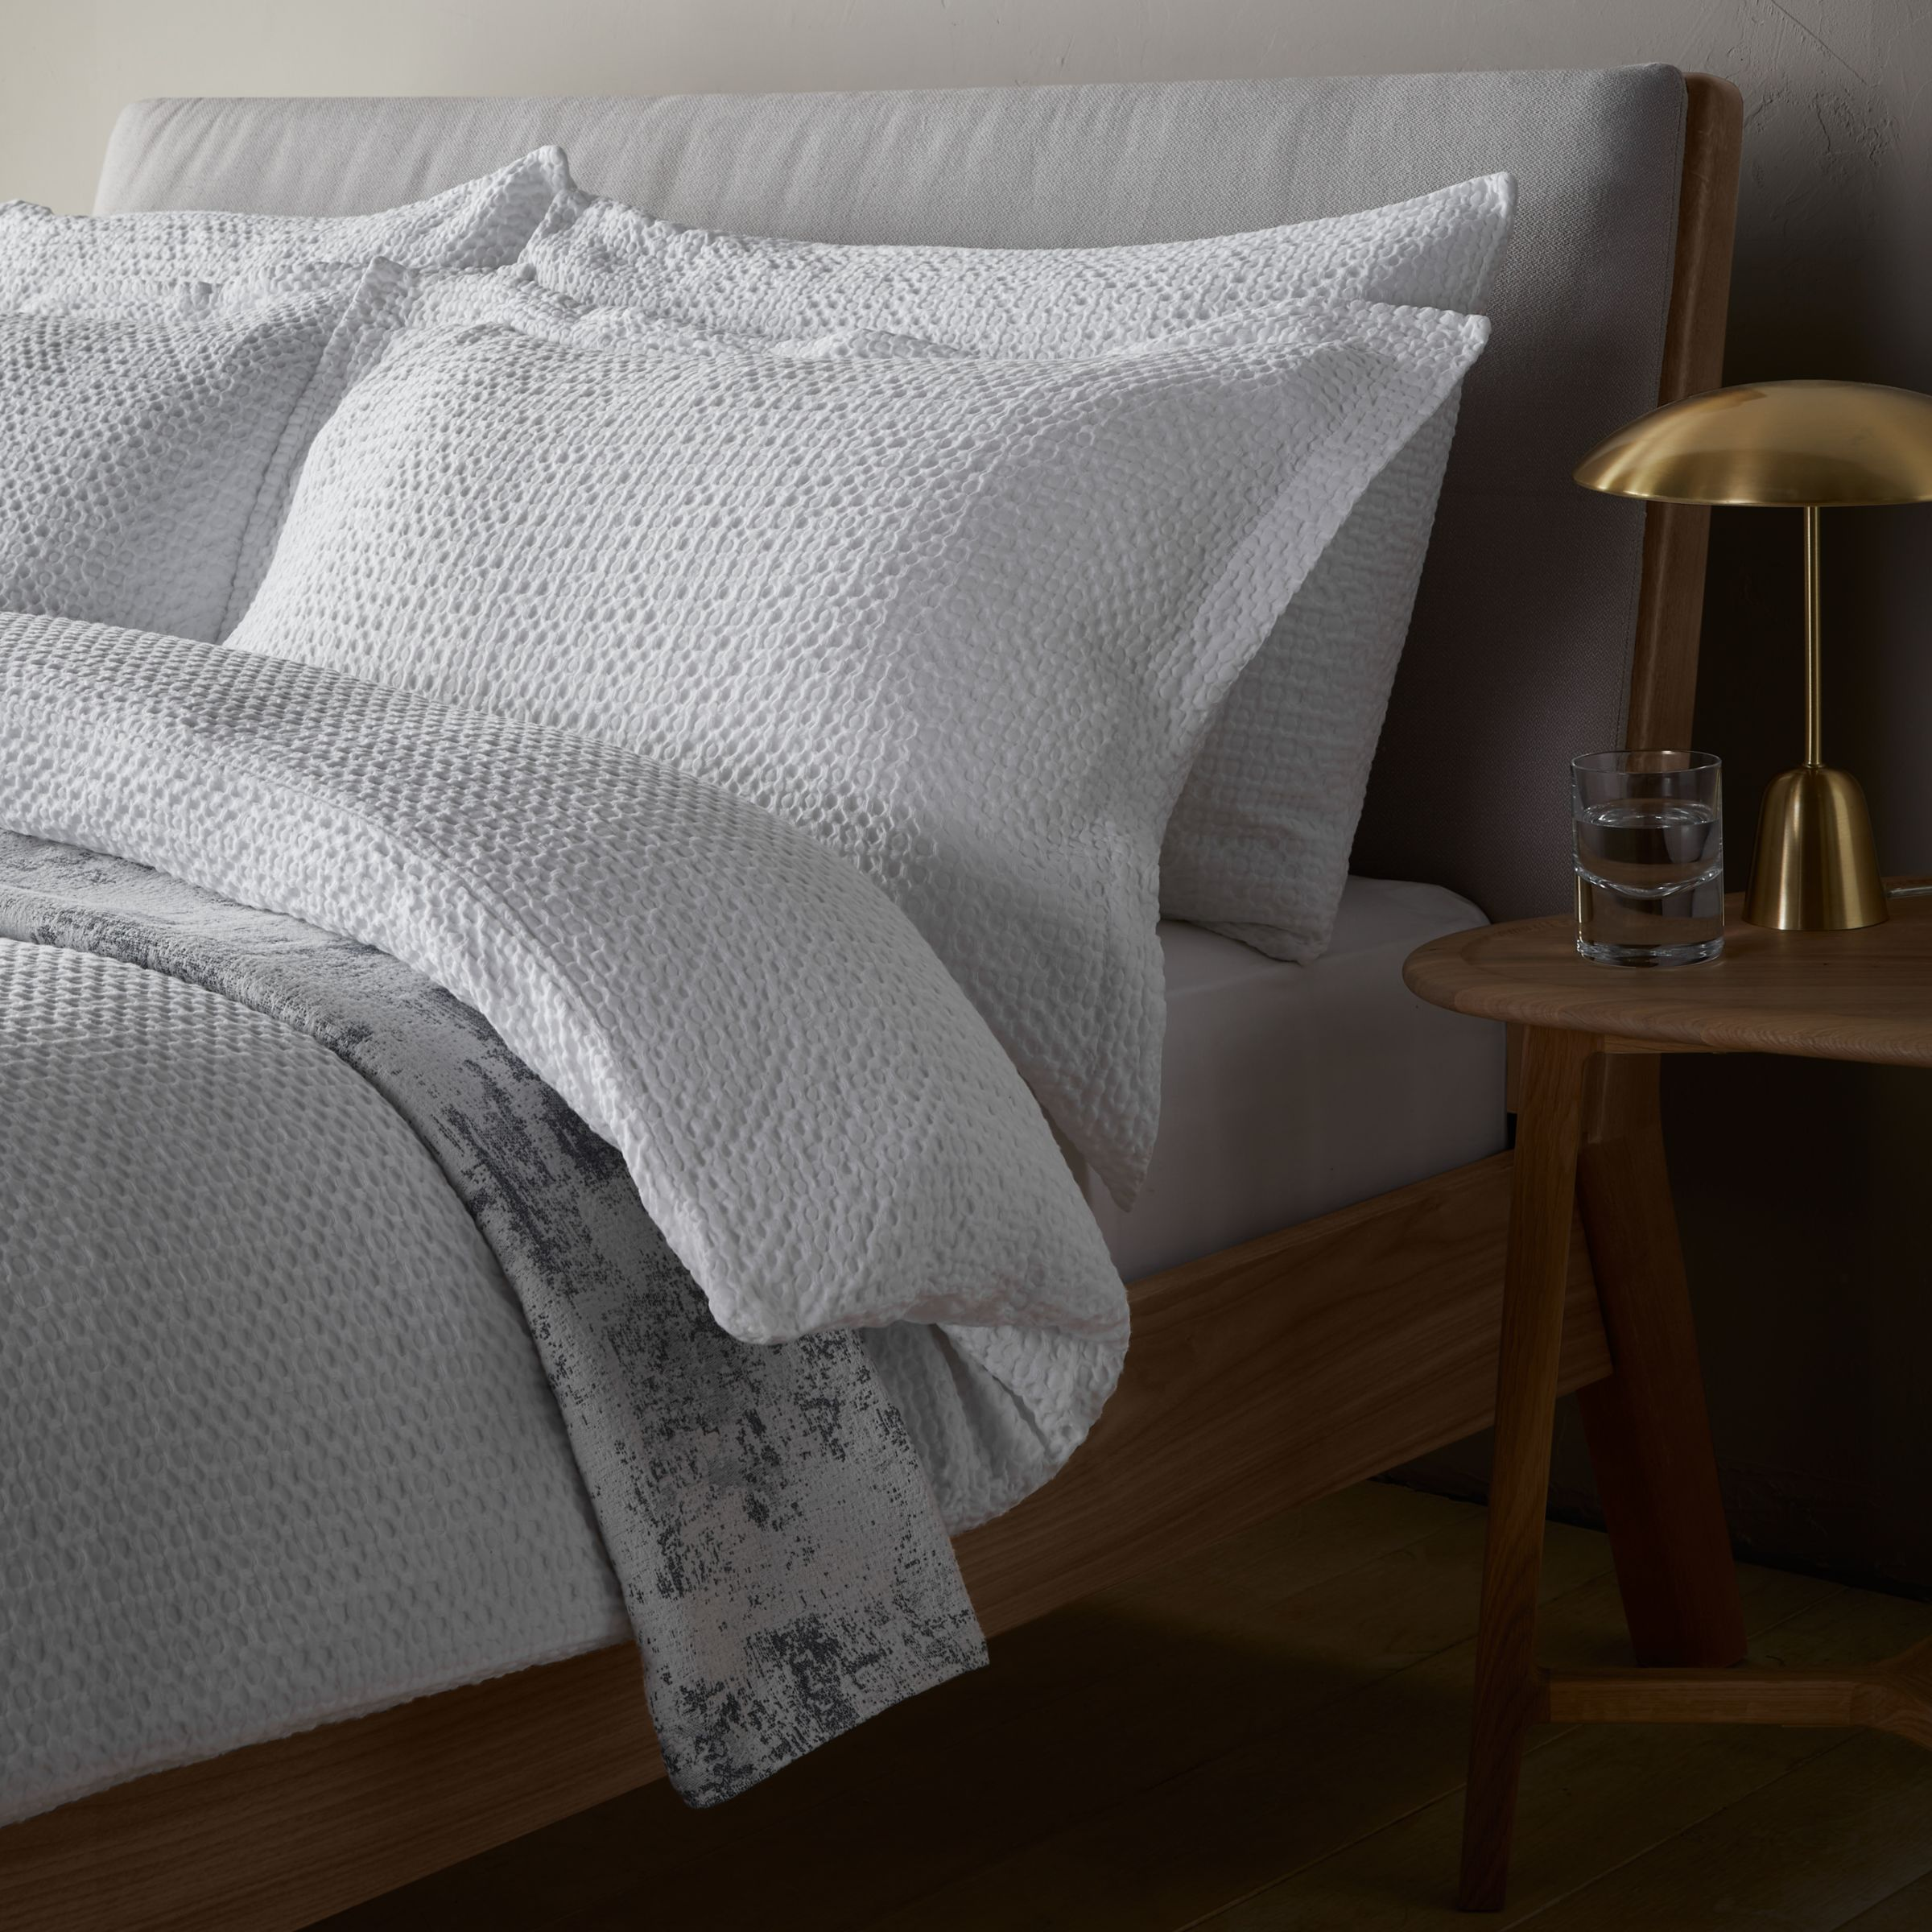 Design Project by John Lewis Design Project by John Lewis No.143 Bedding